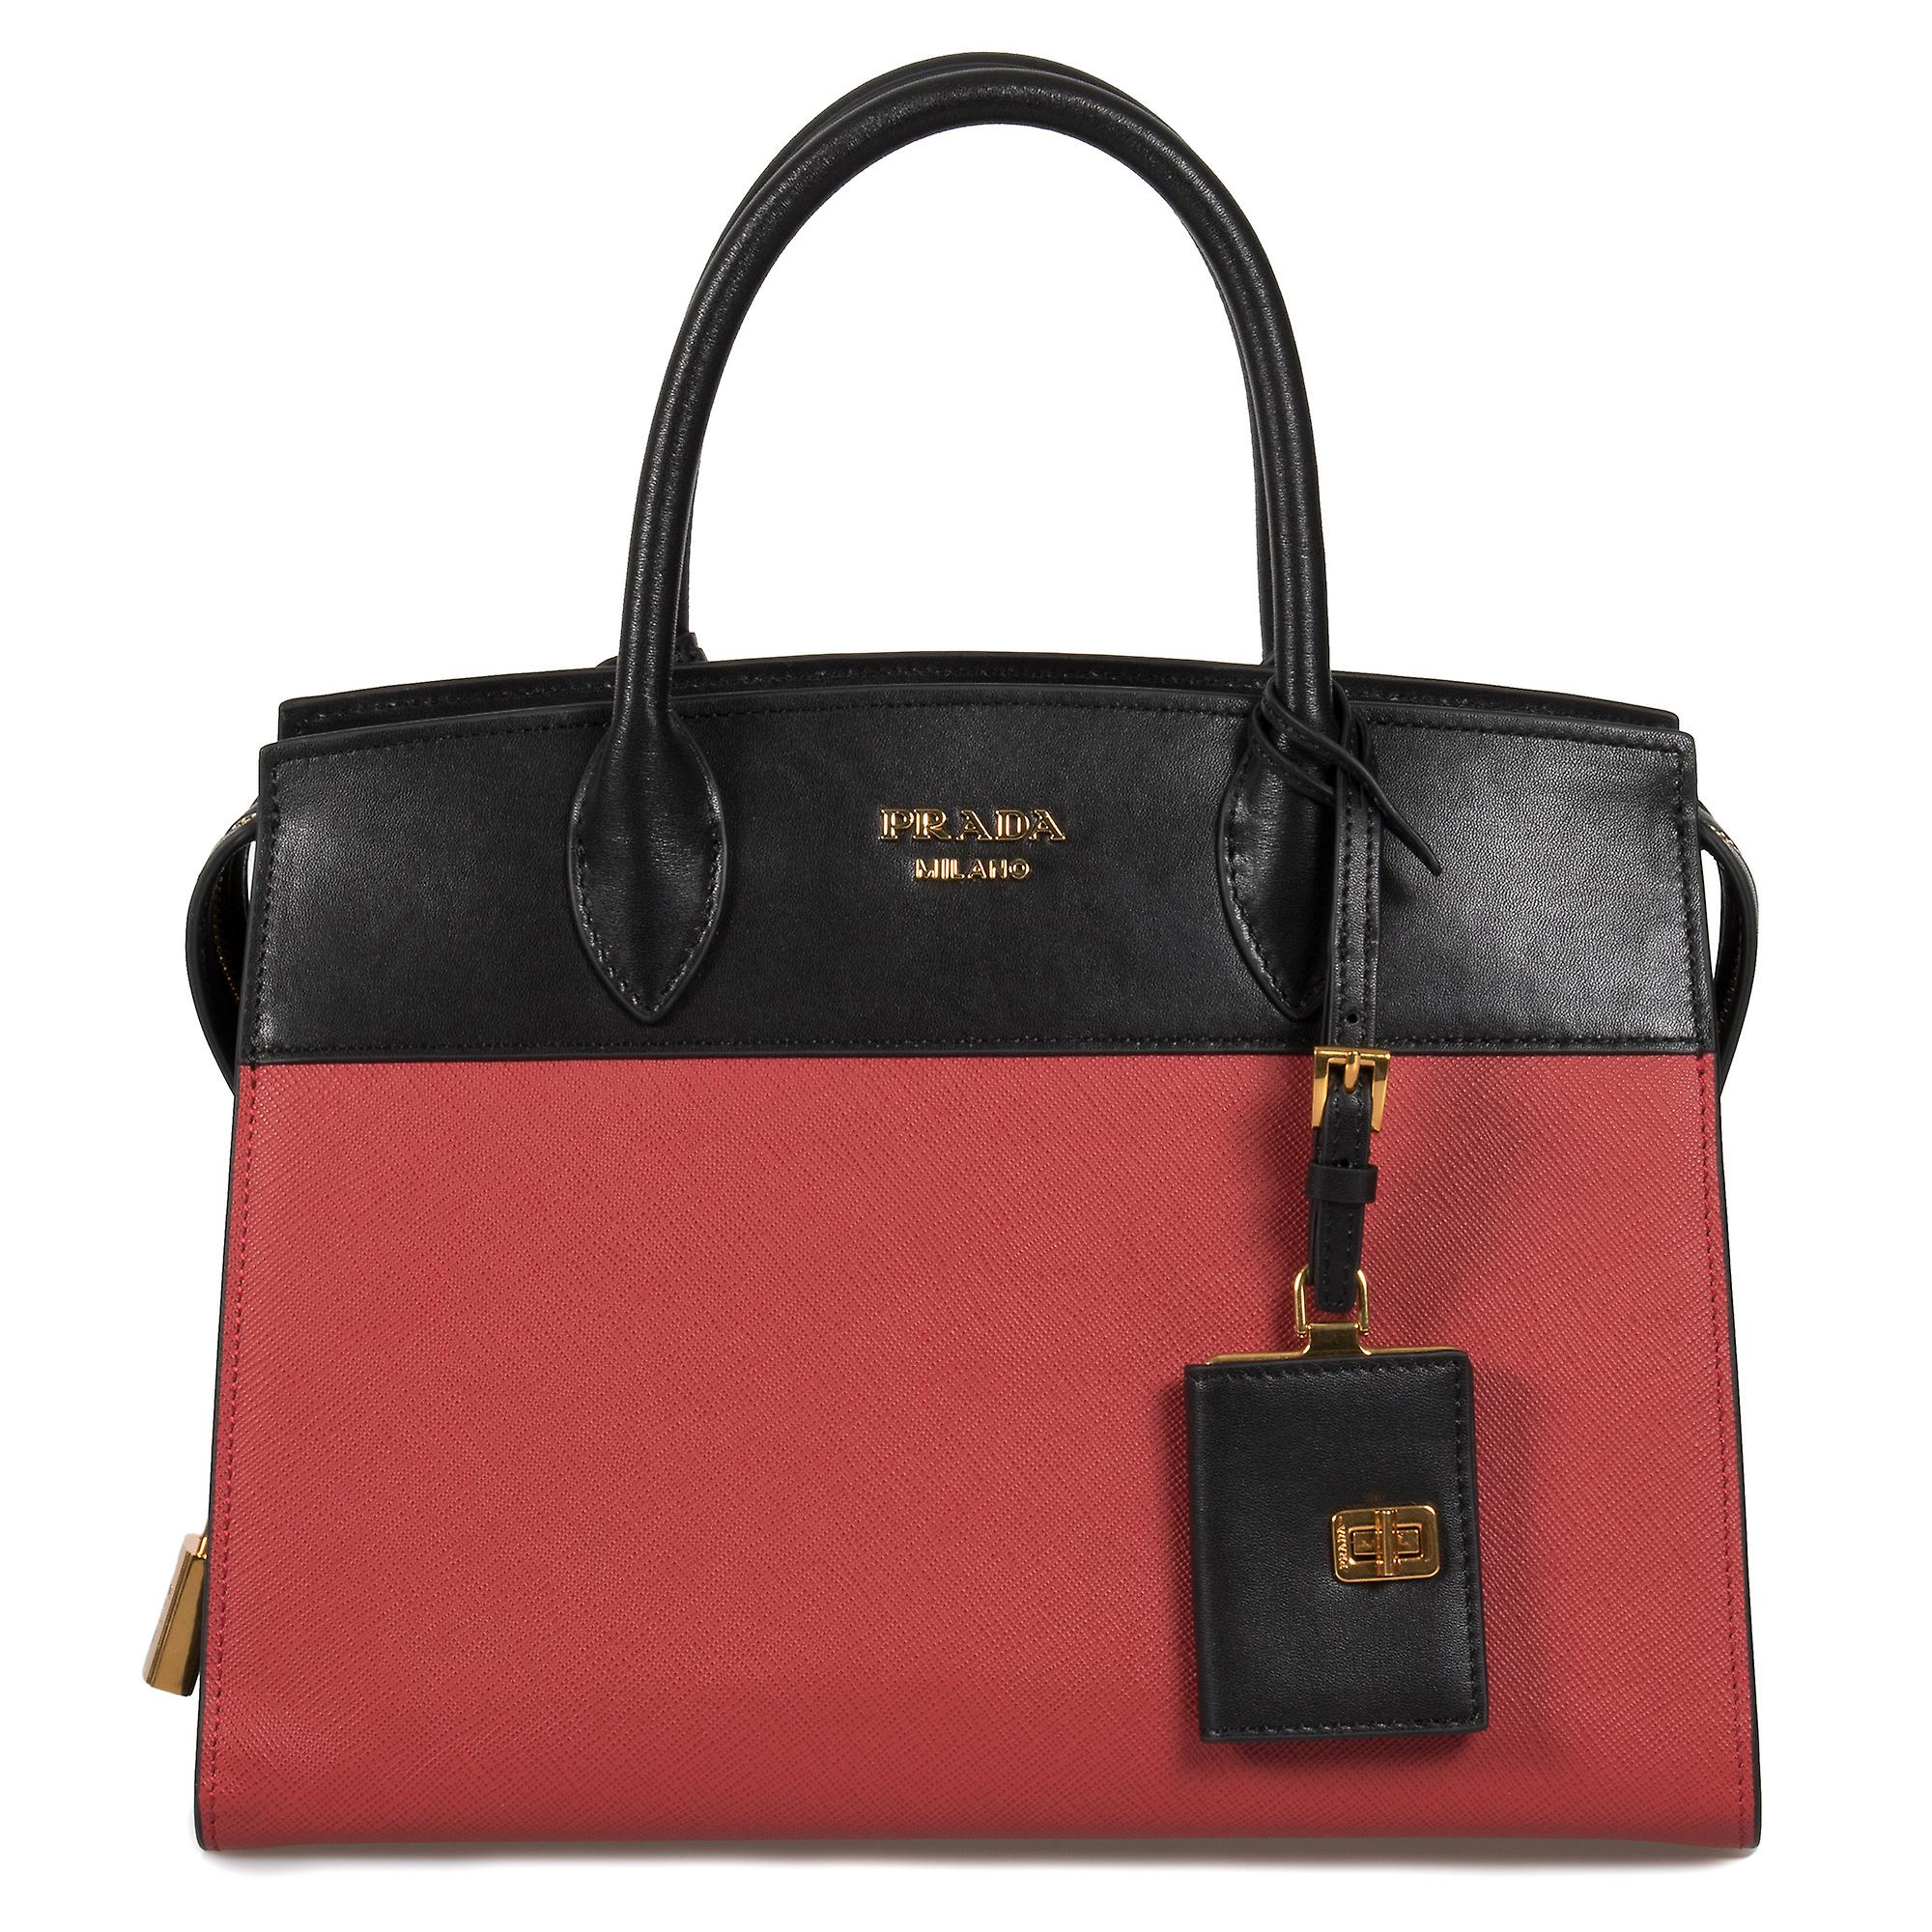 Prada Esplanade Leather Tote In rouge and noir